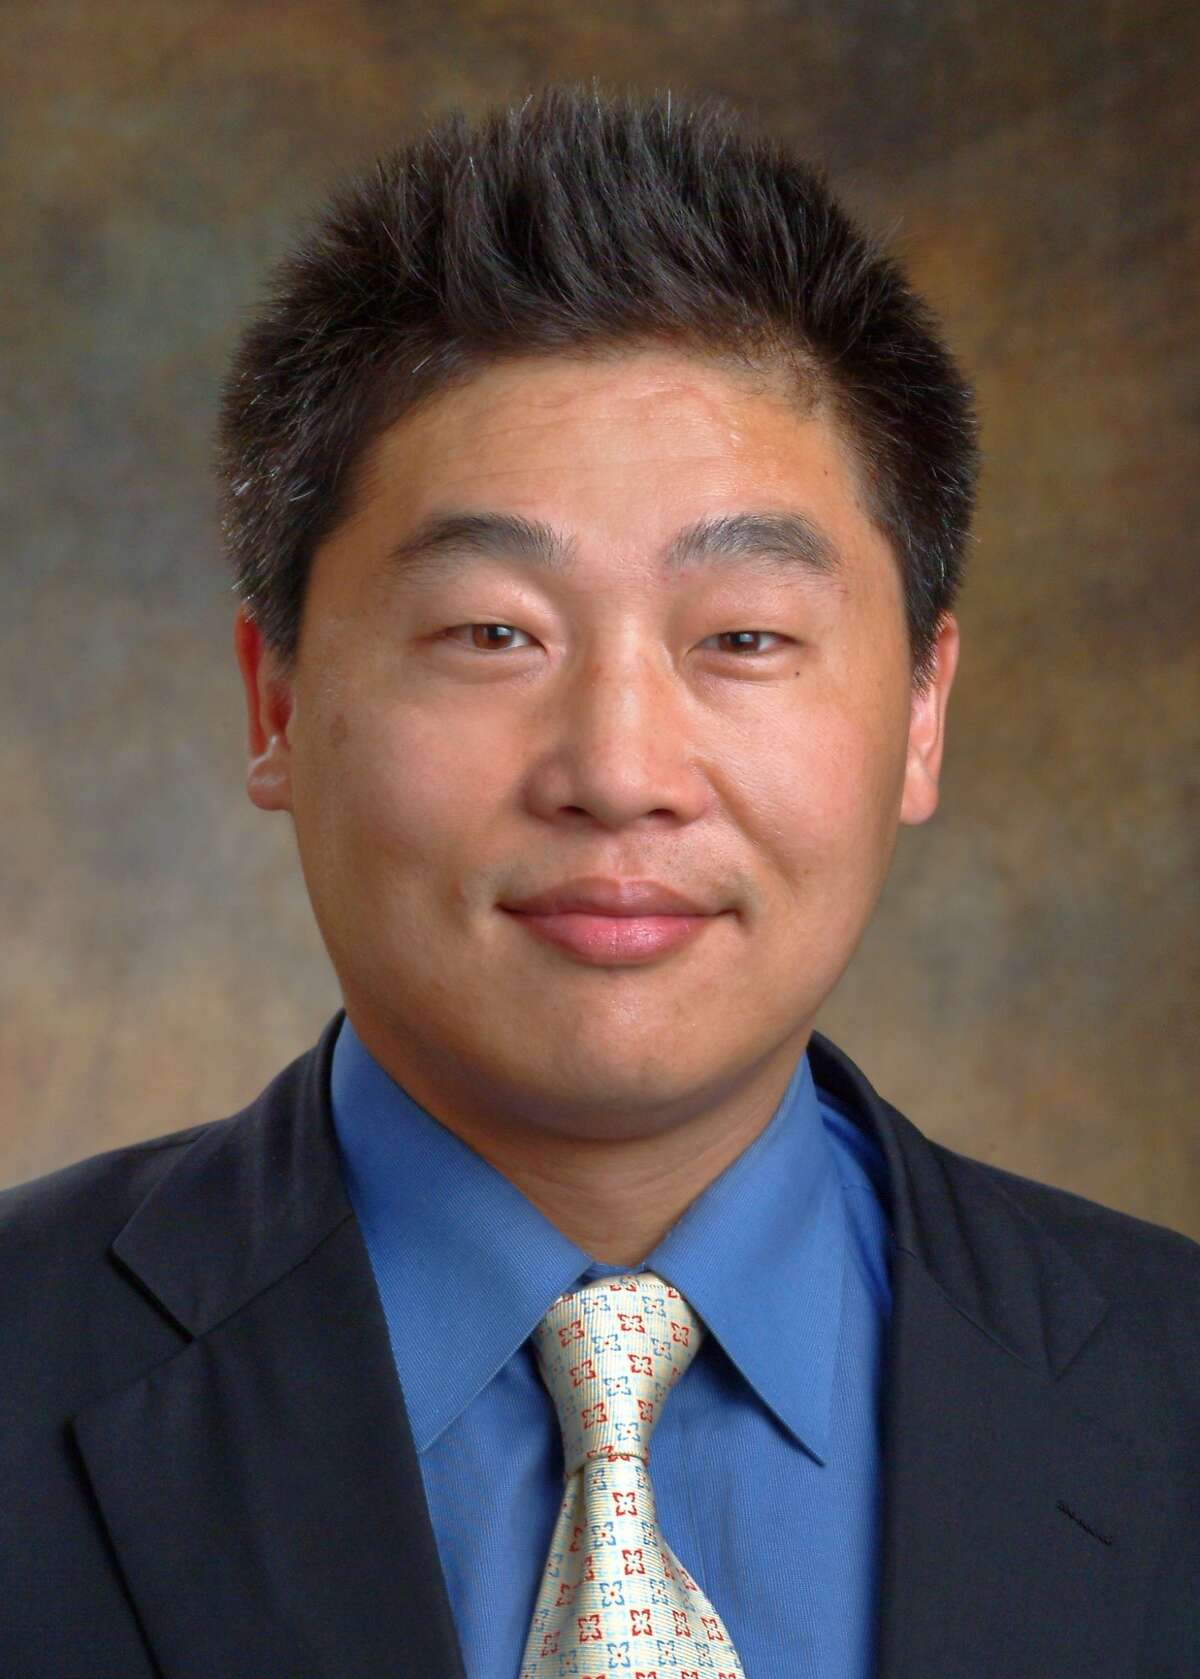 Dr. Winston Chung is a psychiatrist with Sutter Pacific Medical Foundation and is affiliated with the California Pacific Medical Center in San Francisco.